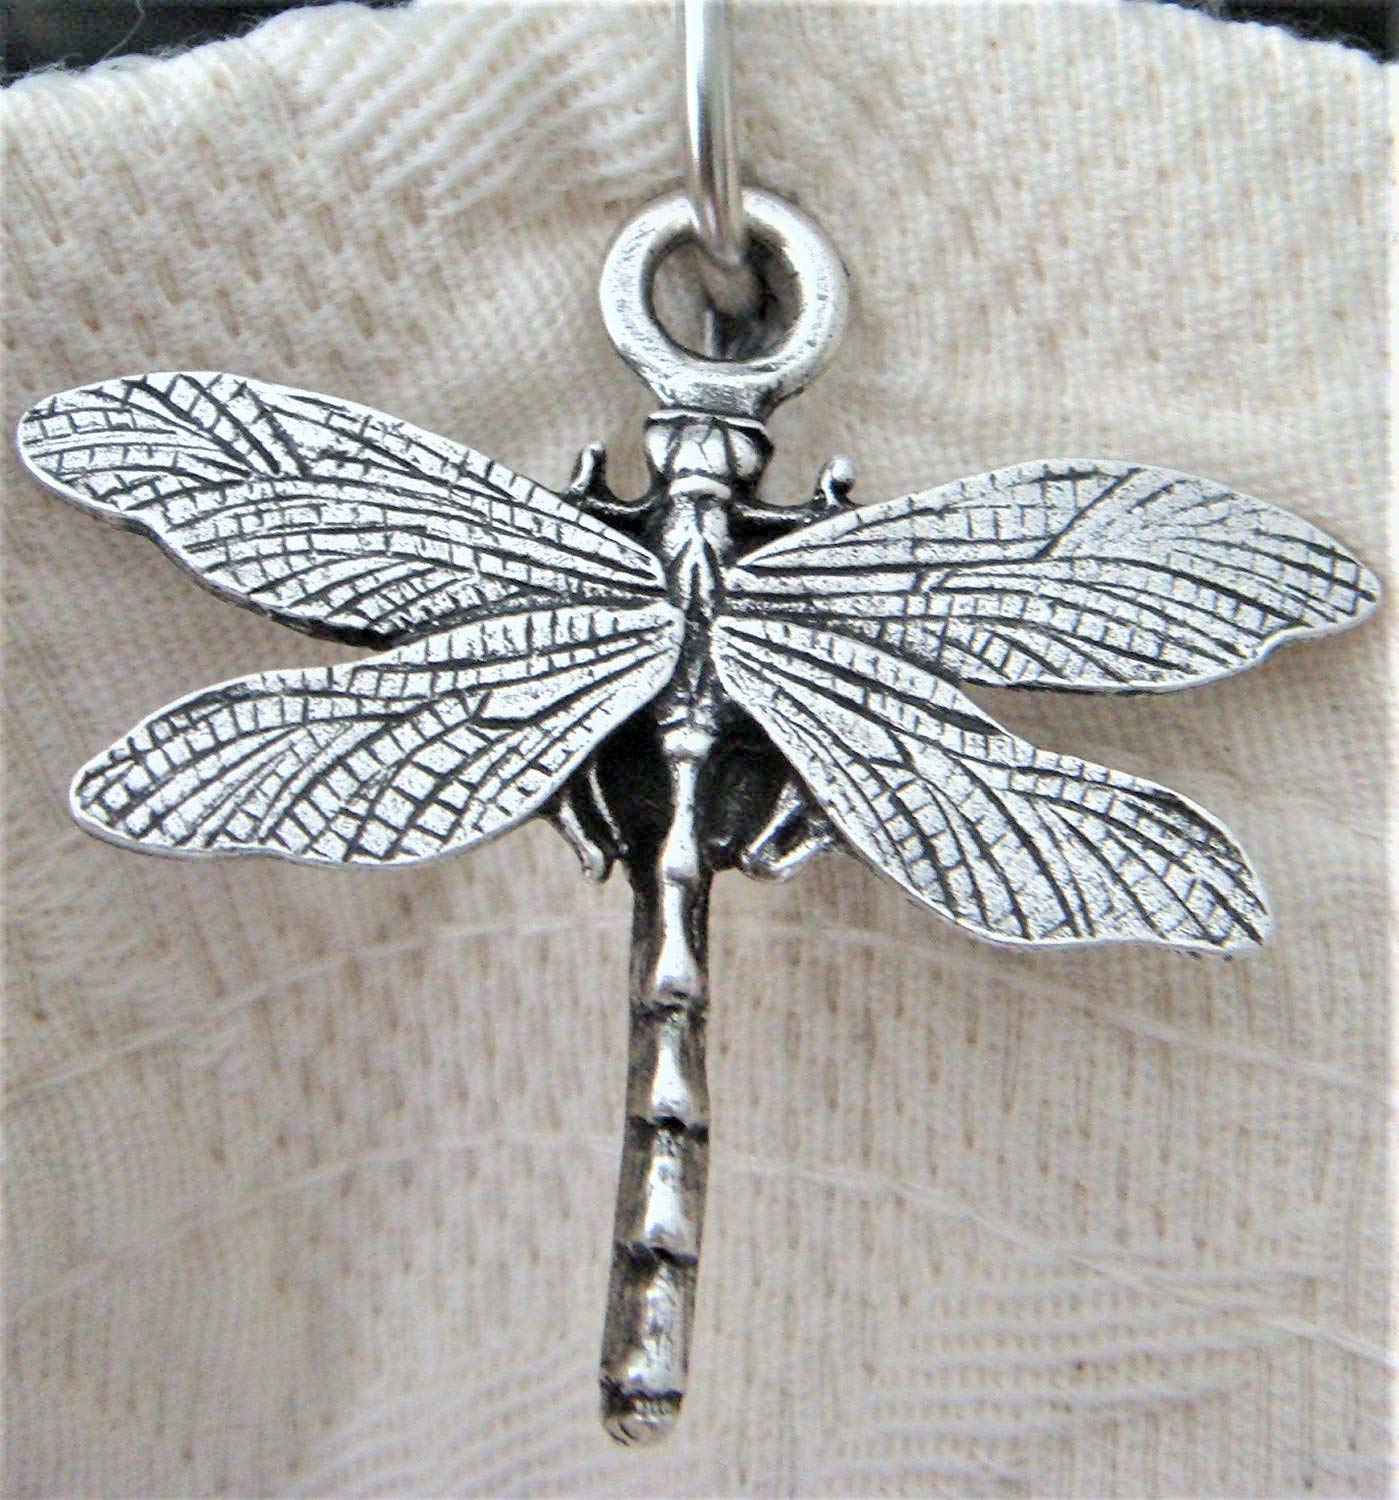 Norma Jean Designs 12 Dragonfly Shower Hook Add-on - Antique Silver Electroplate Finish Free roller bead chrome Shower Curtain Hooks with Purchase